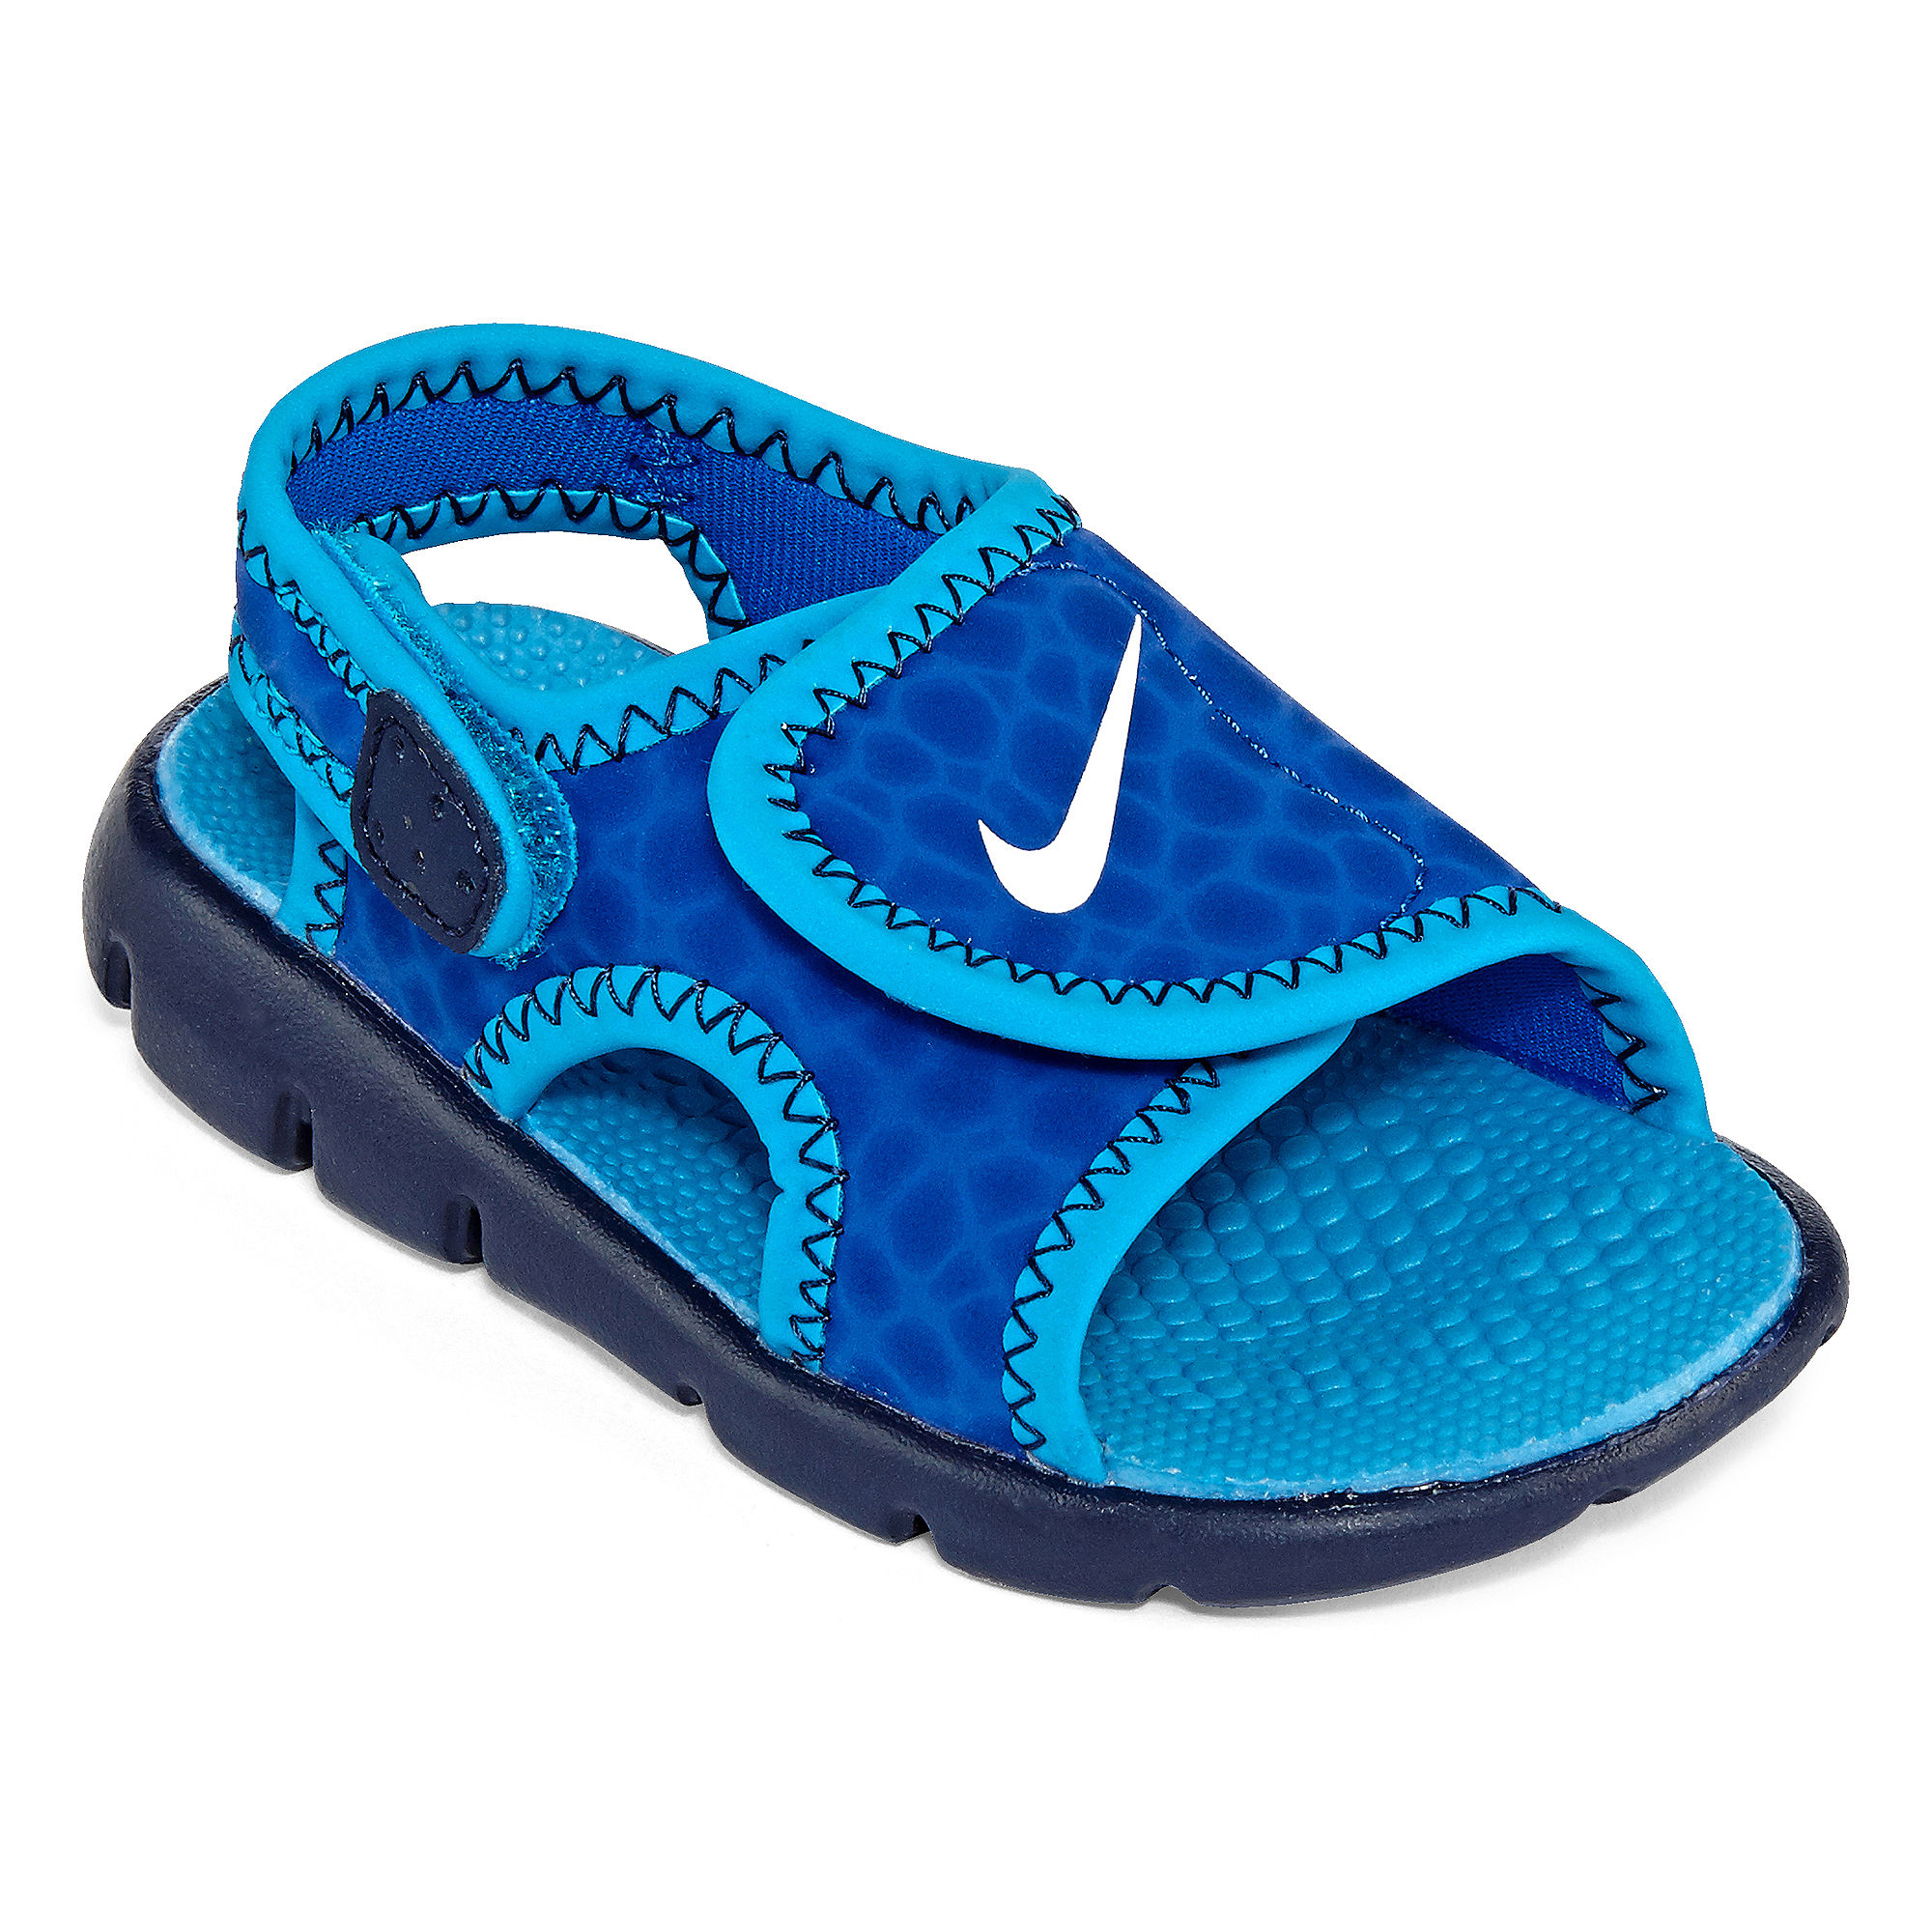 f4c52f611ae8 ... official nike sunray boys sandals toddler. upc 685068725364 a9395 42959